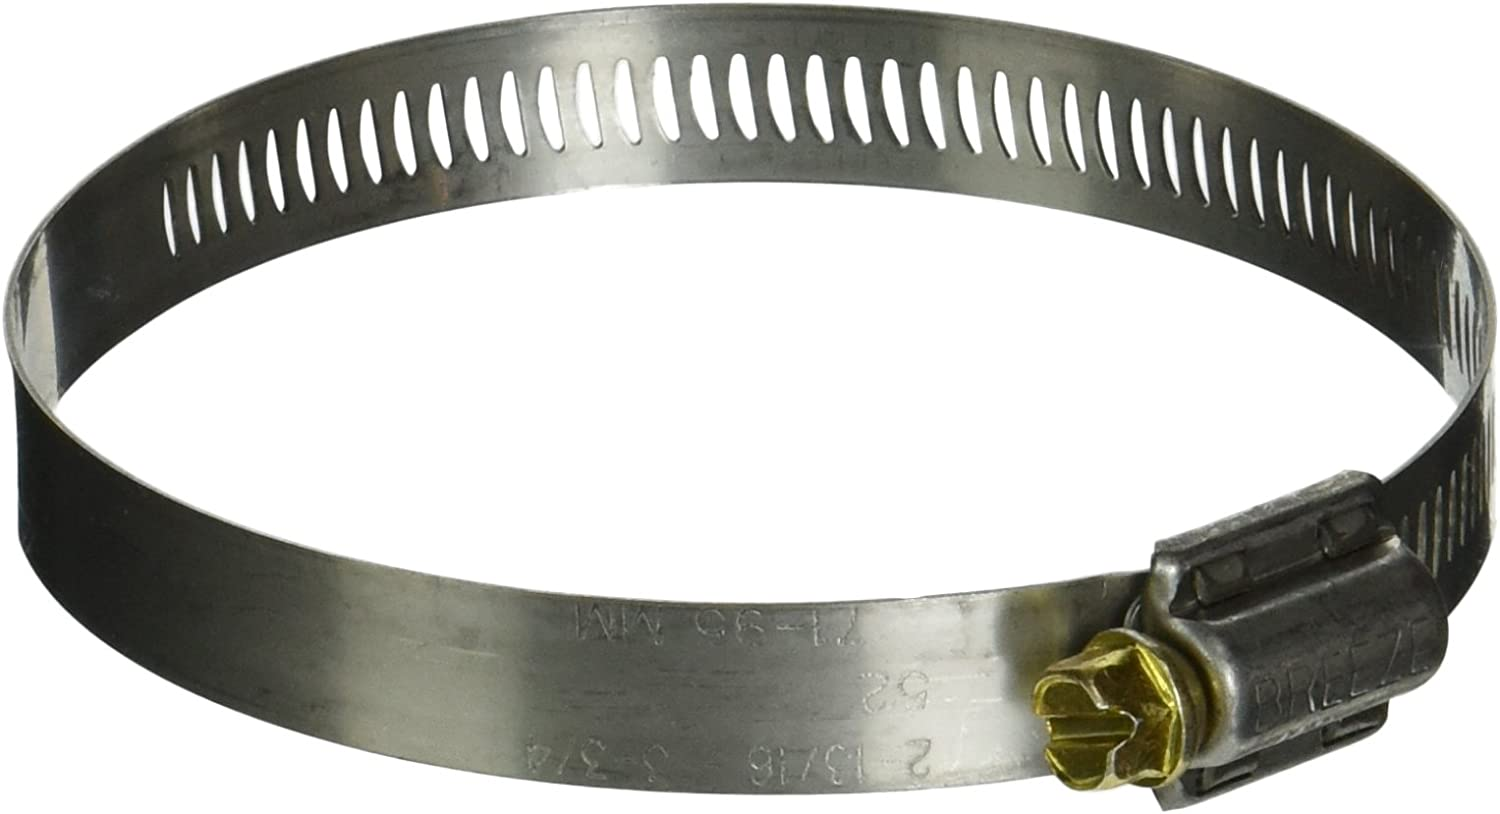 Pack of 10 SAE Size 44 2-5//16 to 3-1//4 Diameter Range Breeze Power-Seal Stainless Steel Hose Clamp Worm-Drive 1//2 Bandwidth